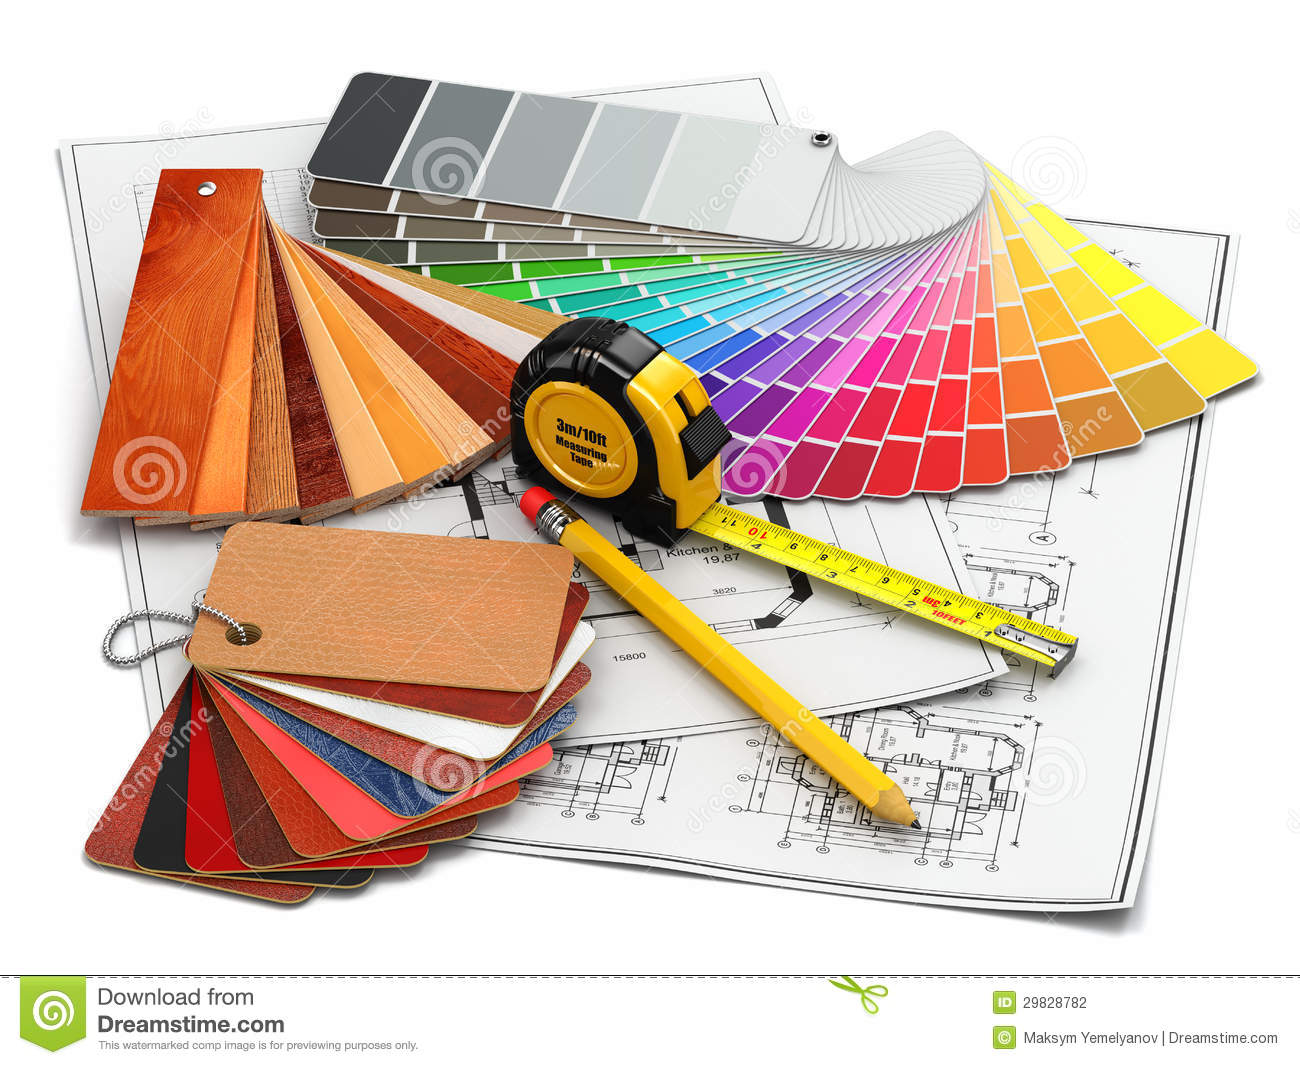 Home Architecture Tools Of Interior Design Architectural Materials Tools And